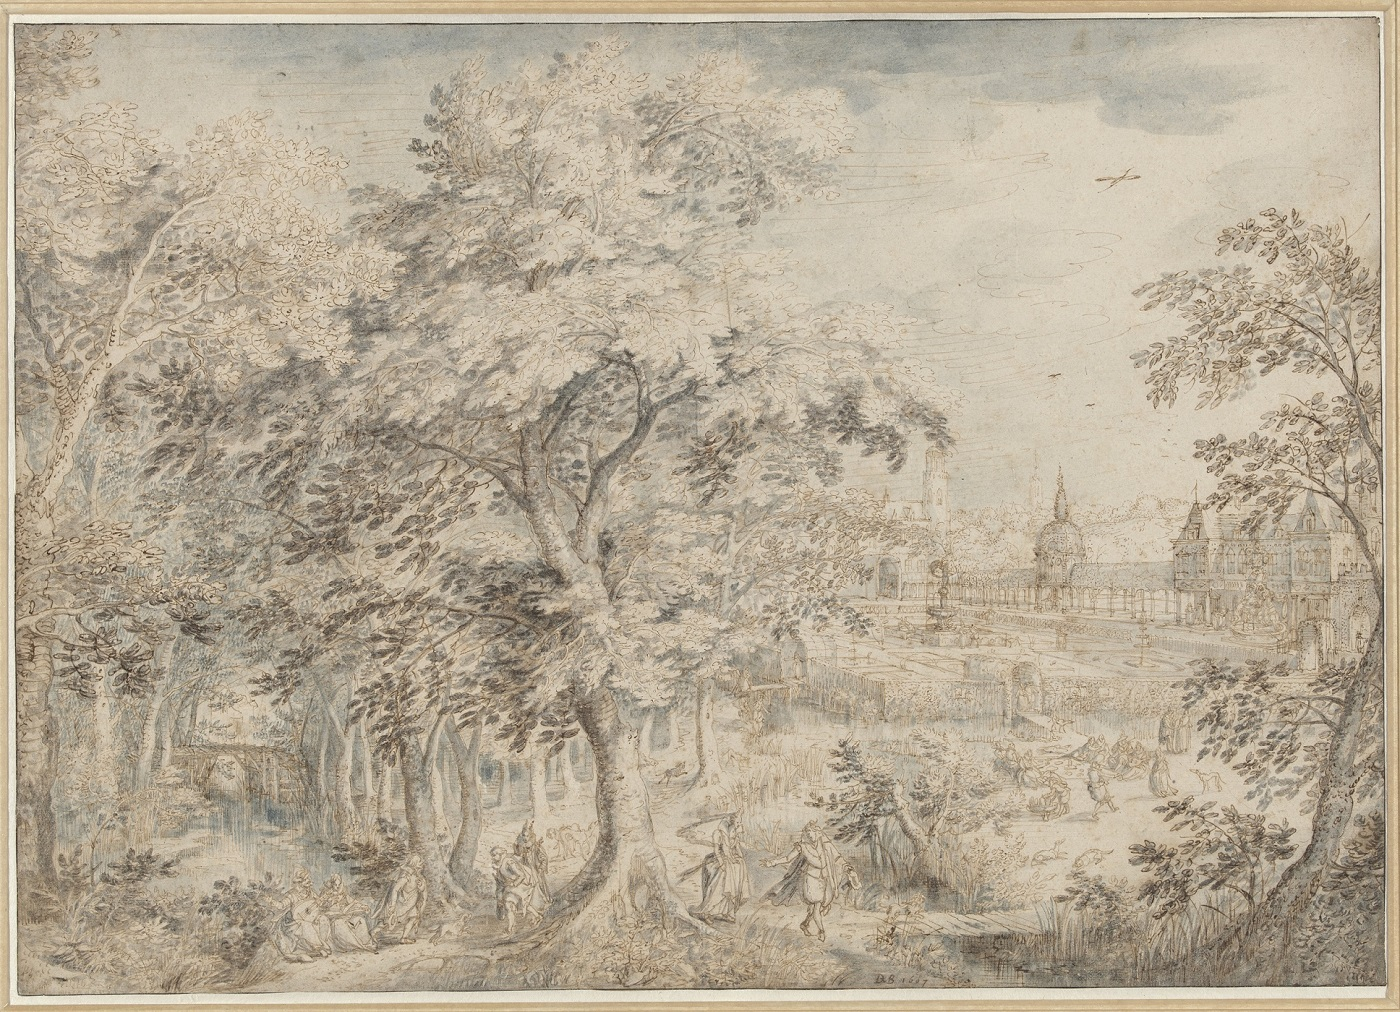 David Vinckboons, Elegant Garden Party in a Wooded Landscape, with a Park in the Background, Rijksmuseum Amsterdam